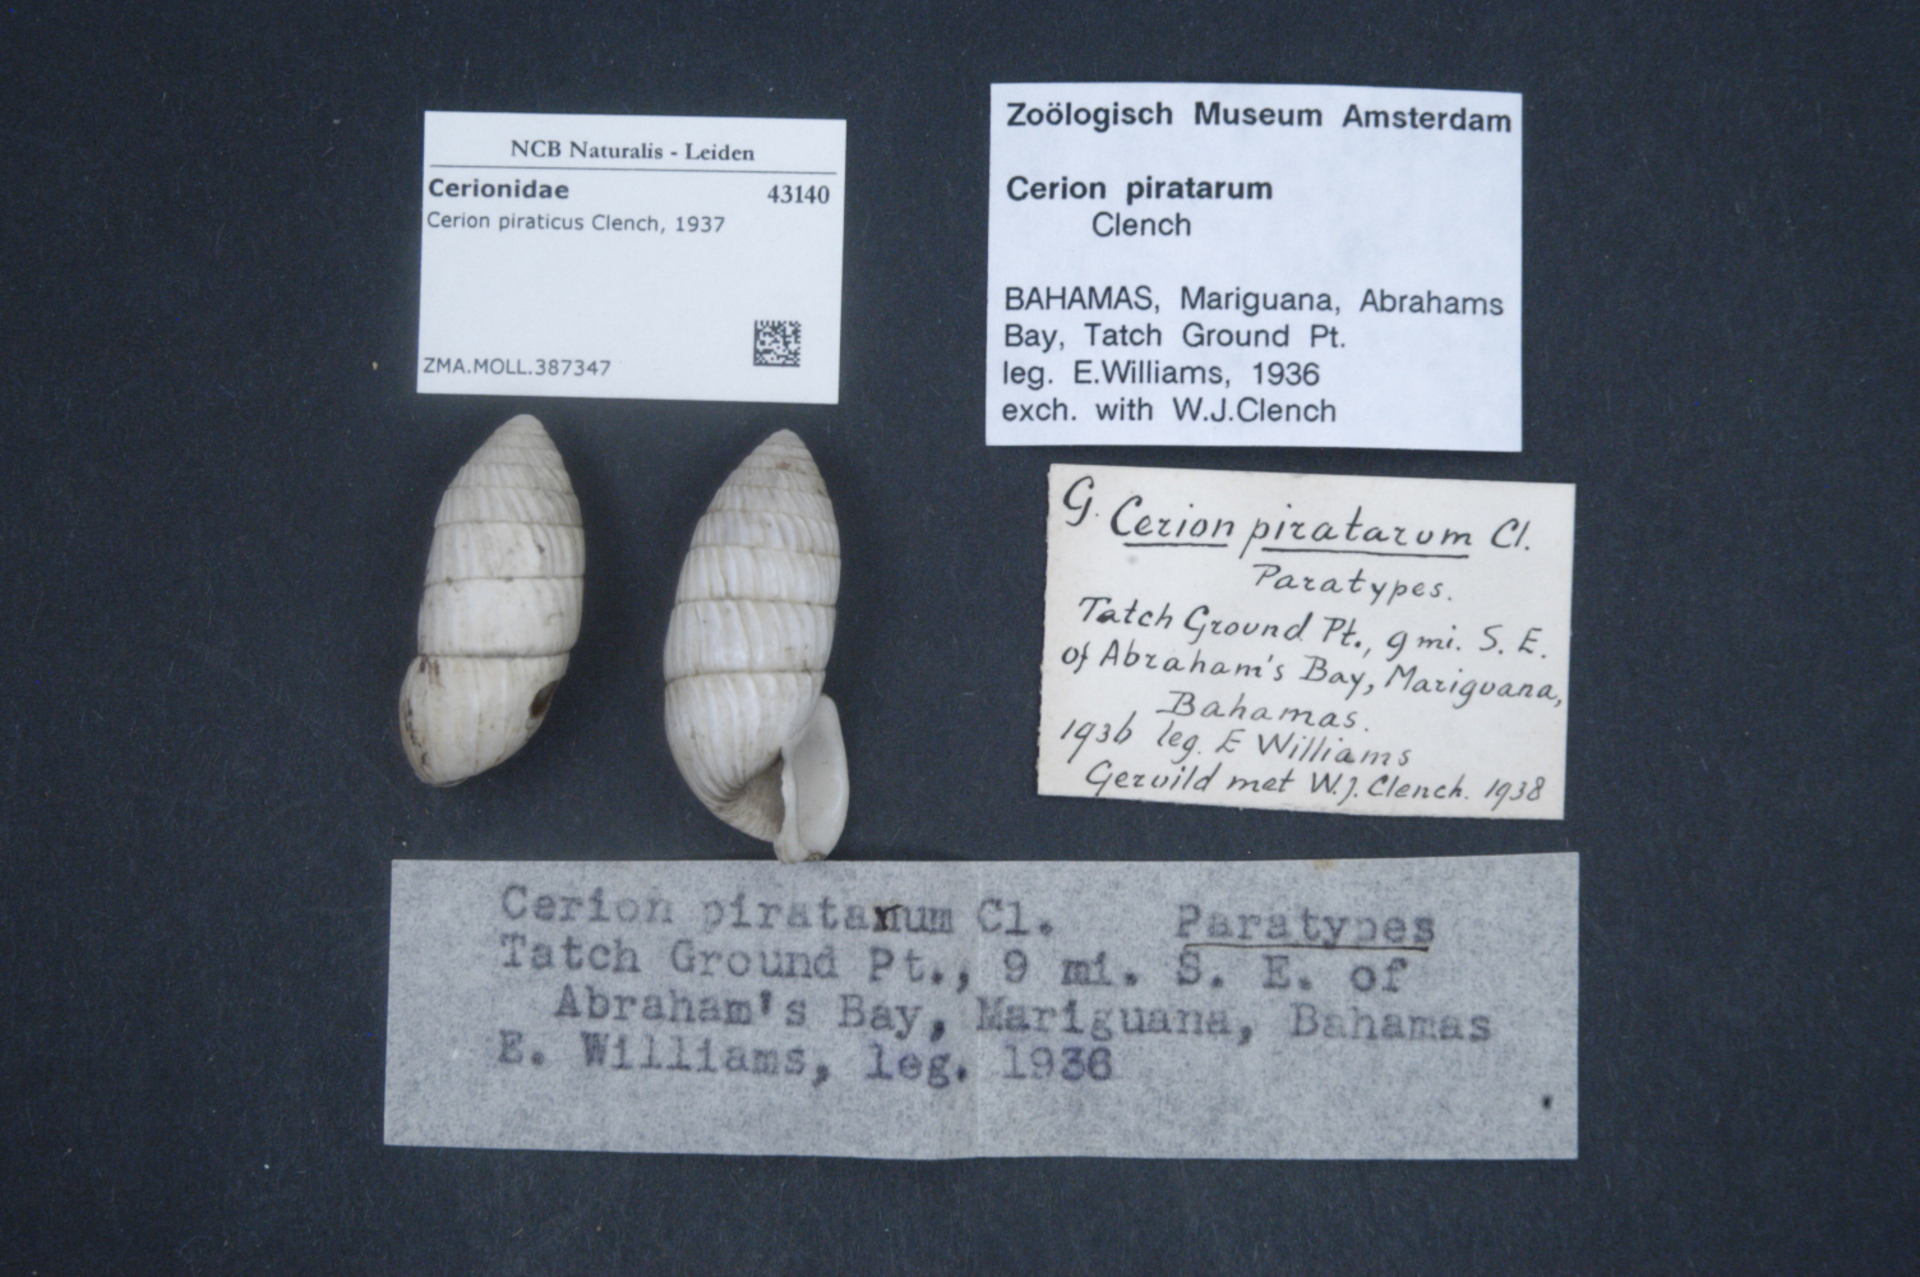 ZMA.MOLL.387347   Cerion (Strophiops) piraticus Clench, 1937